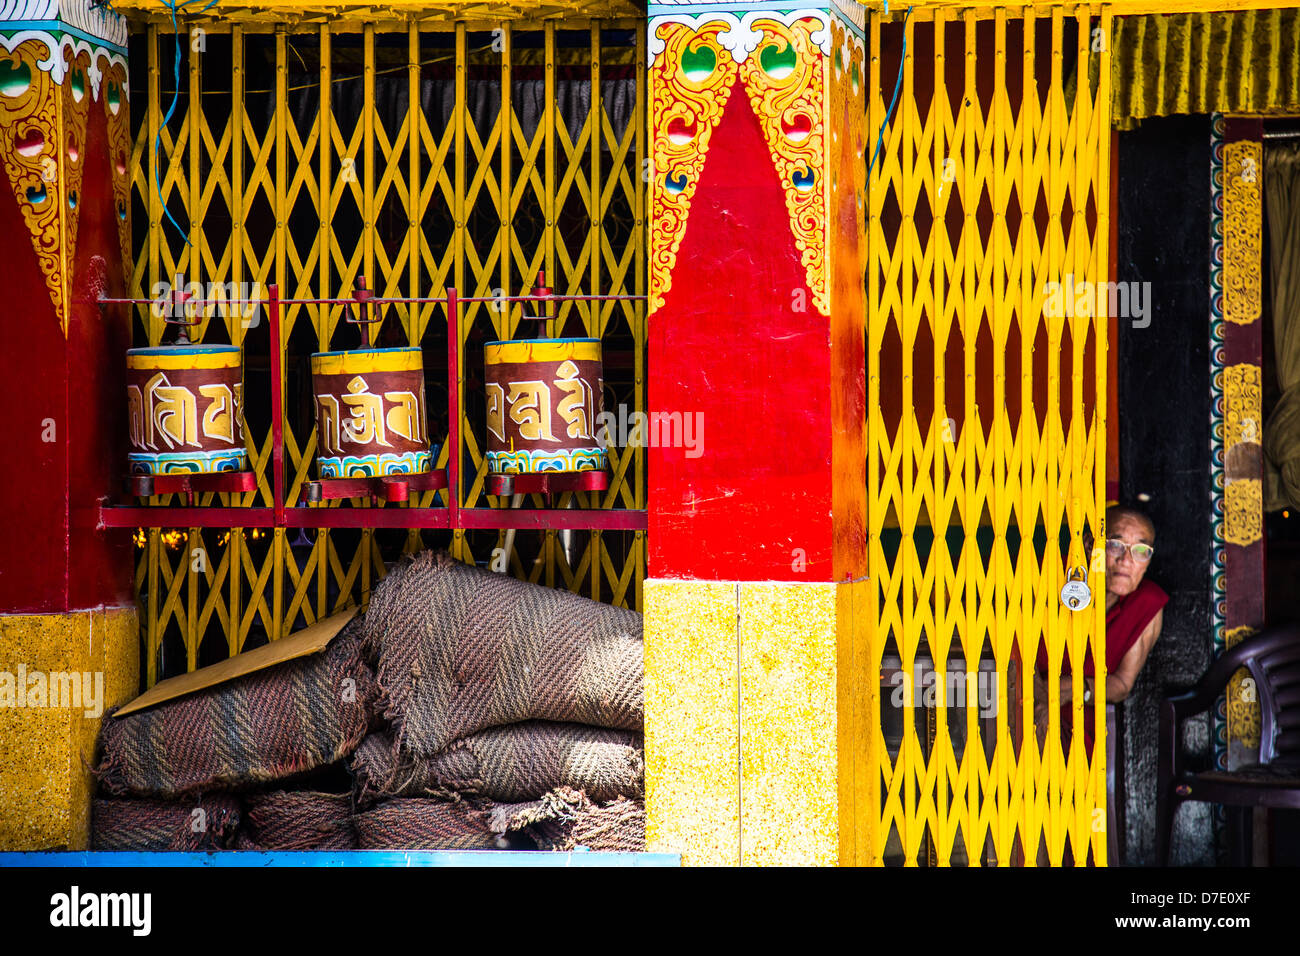 Monk and temple in Majnu-ka-tilla, Tibetan refugee colony in Delhi, India - Stock Image